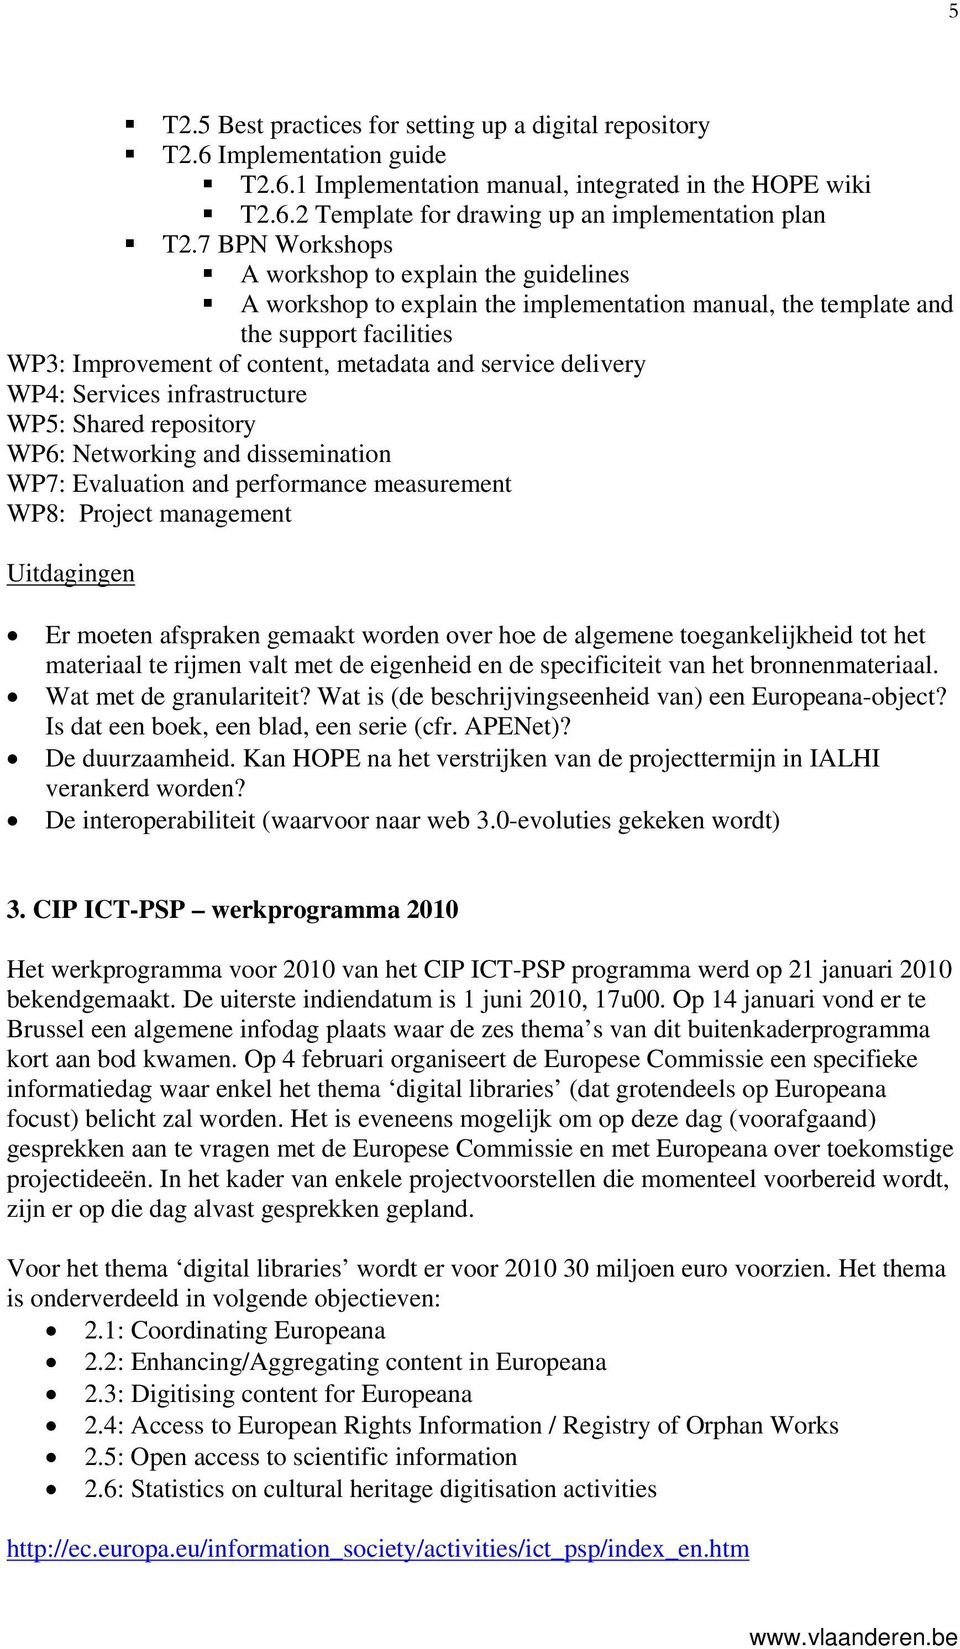 delivery WP4: Services infrastructure WP5: Shared repository WP6: Networking and dissemination WP7: Evaluation and performance measurement WP8: Project management Uitdagingen Er moeten afspraken